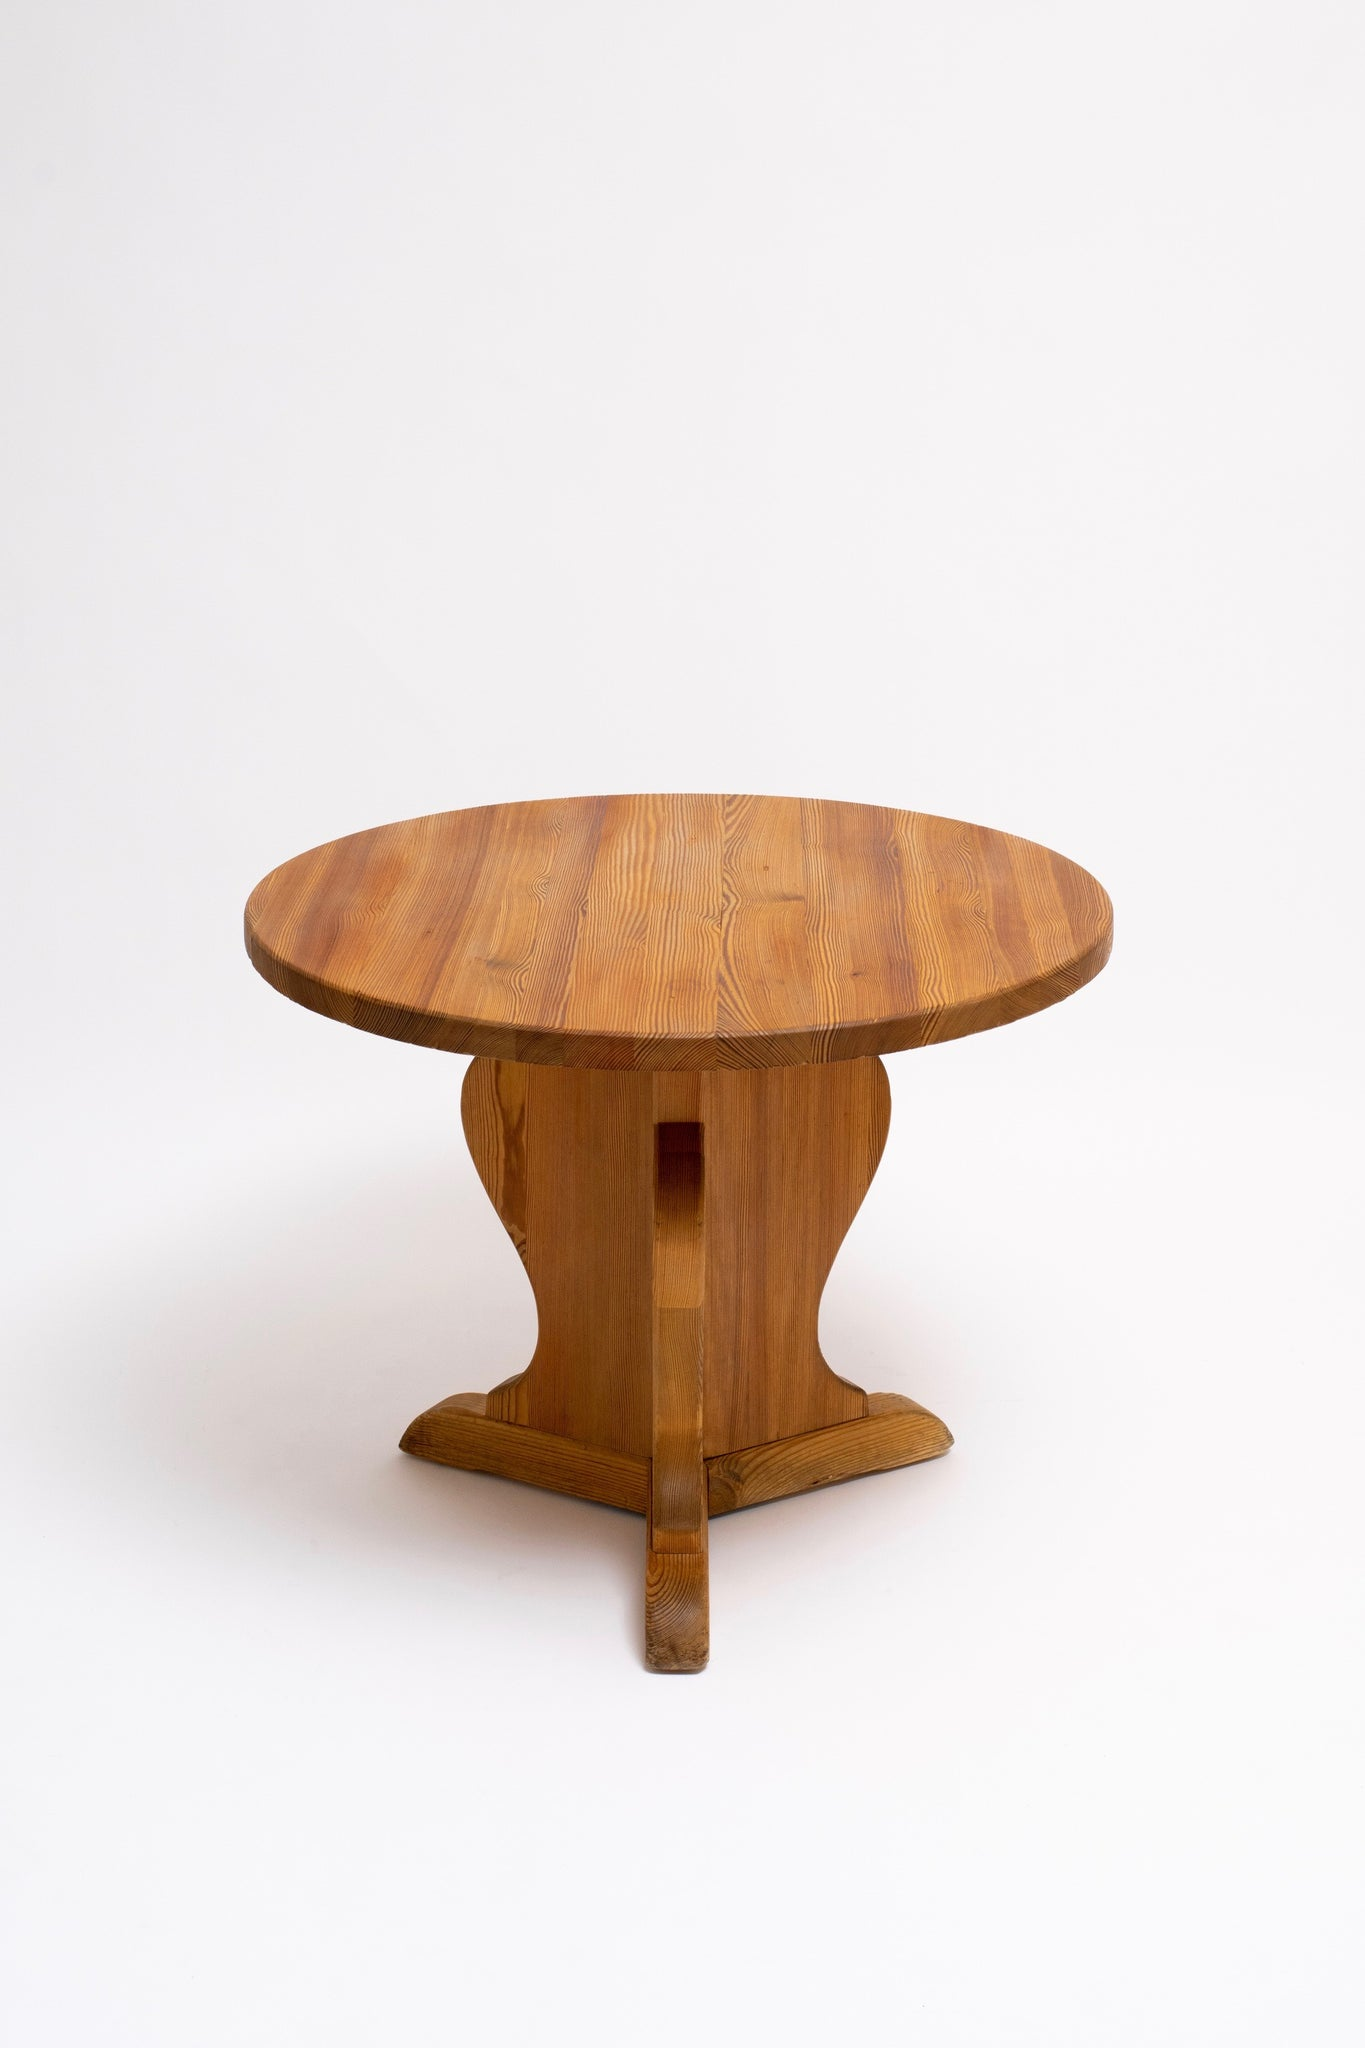 PEDESTAL TABLE. AXEL EINAR HJORTH, C. 1932